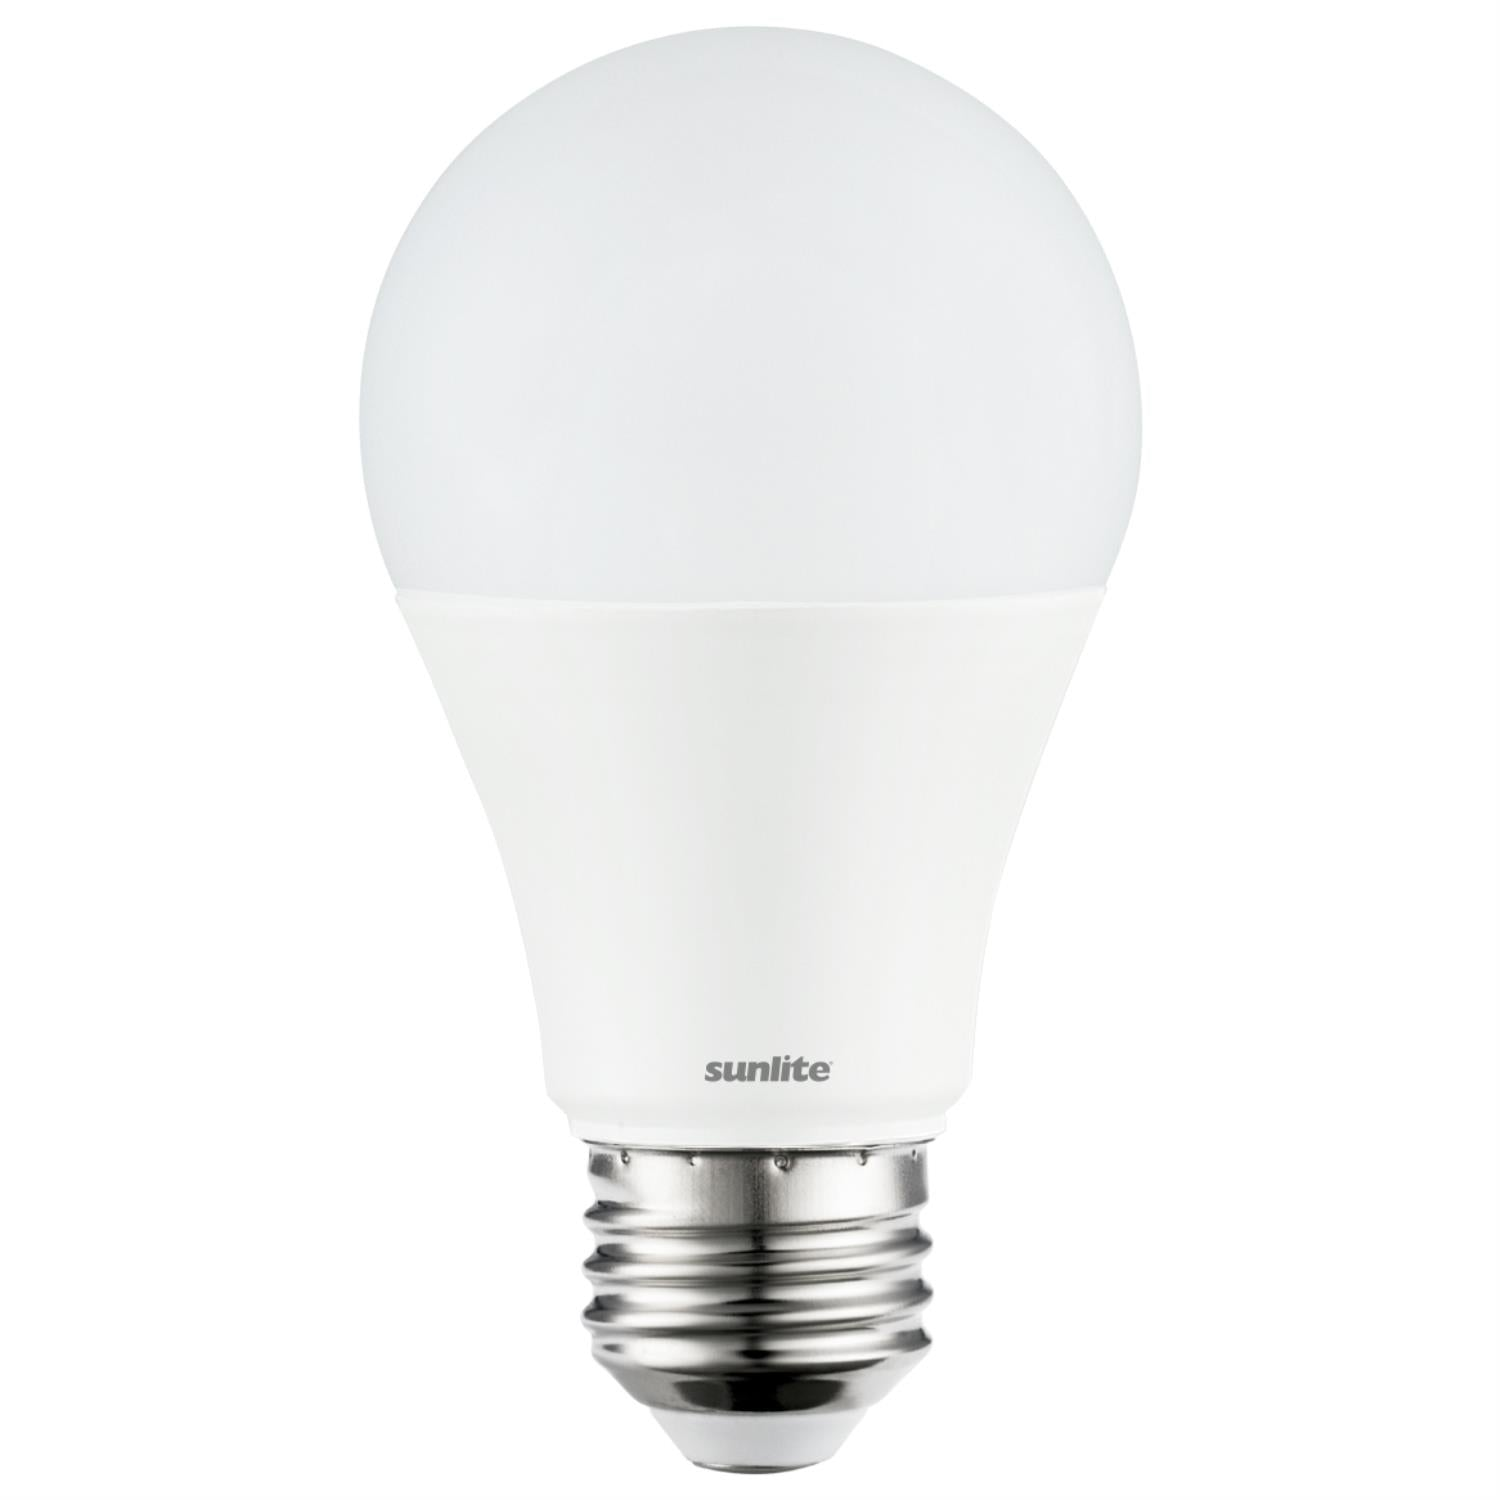 Sunlite 10w A19 Household Lamp E26 Medium Base 3000K Warm White